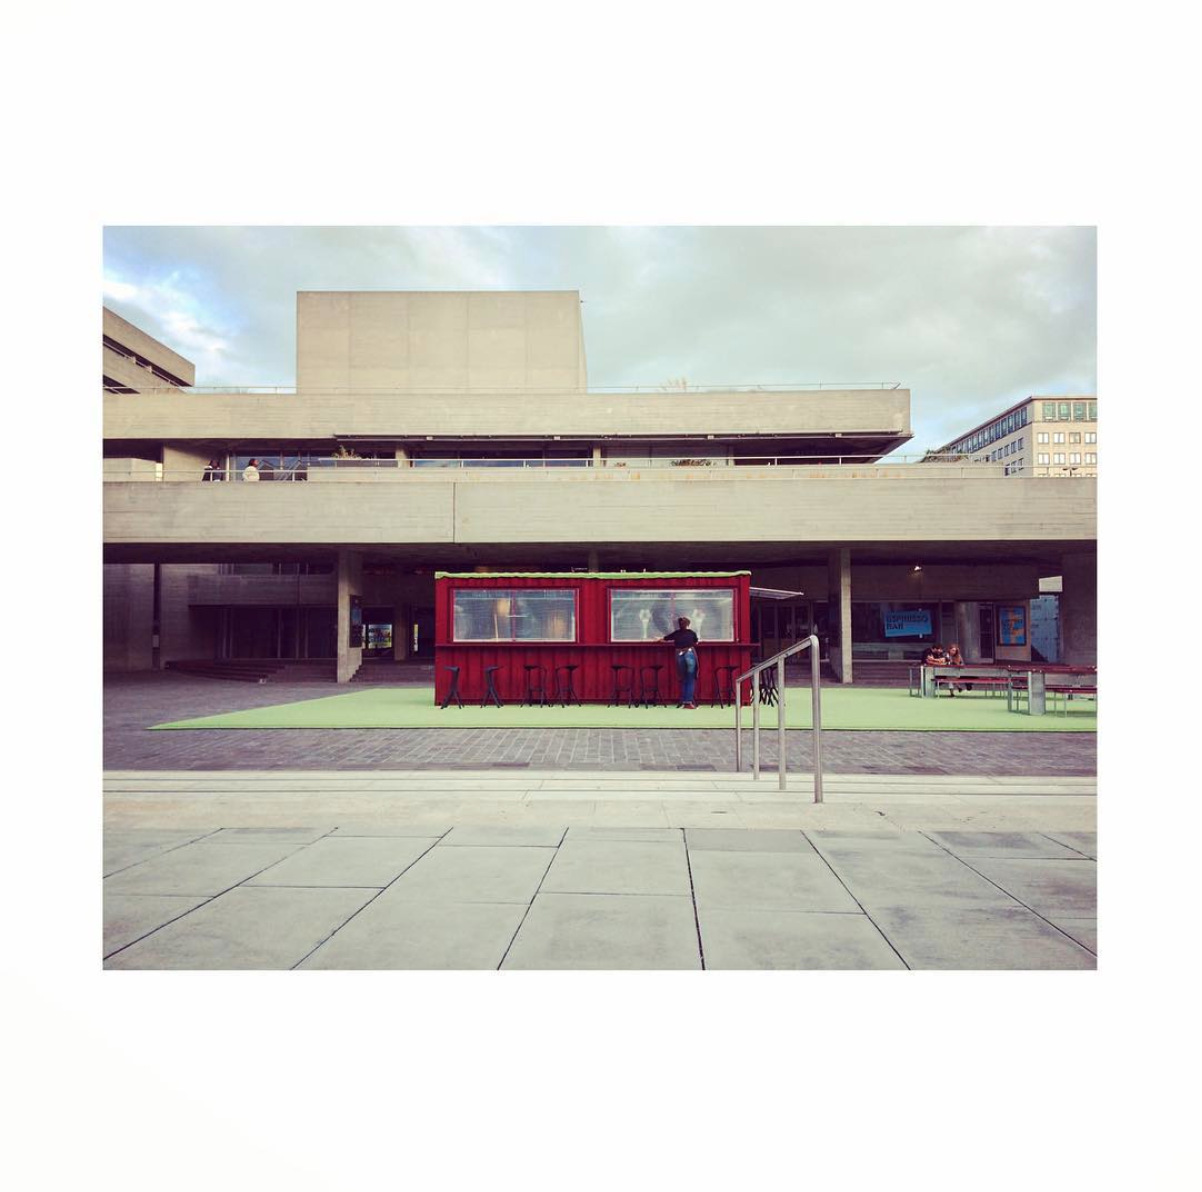 National Theatre, London – UK